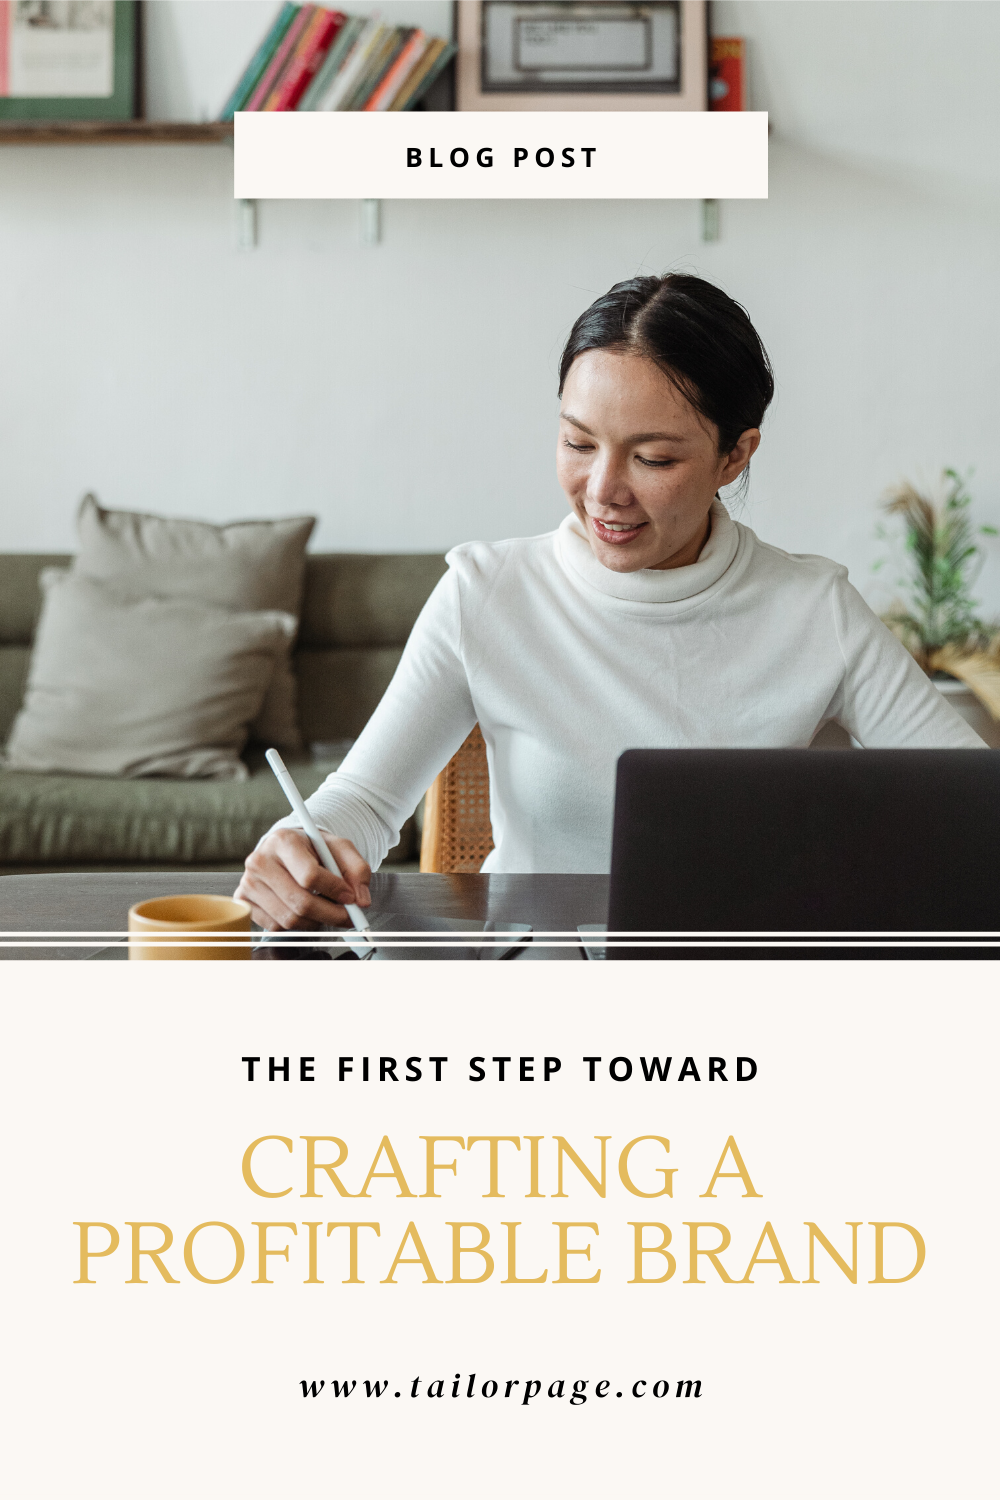 Hey, creative business owners! Click here to learn the first step you need to take to create a profitable brand for your small business.  #creativeentrepreneurs #newbusinesstips